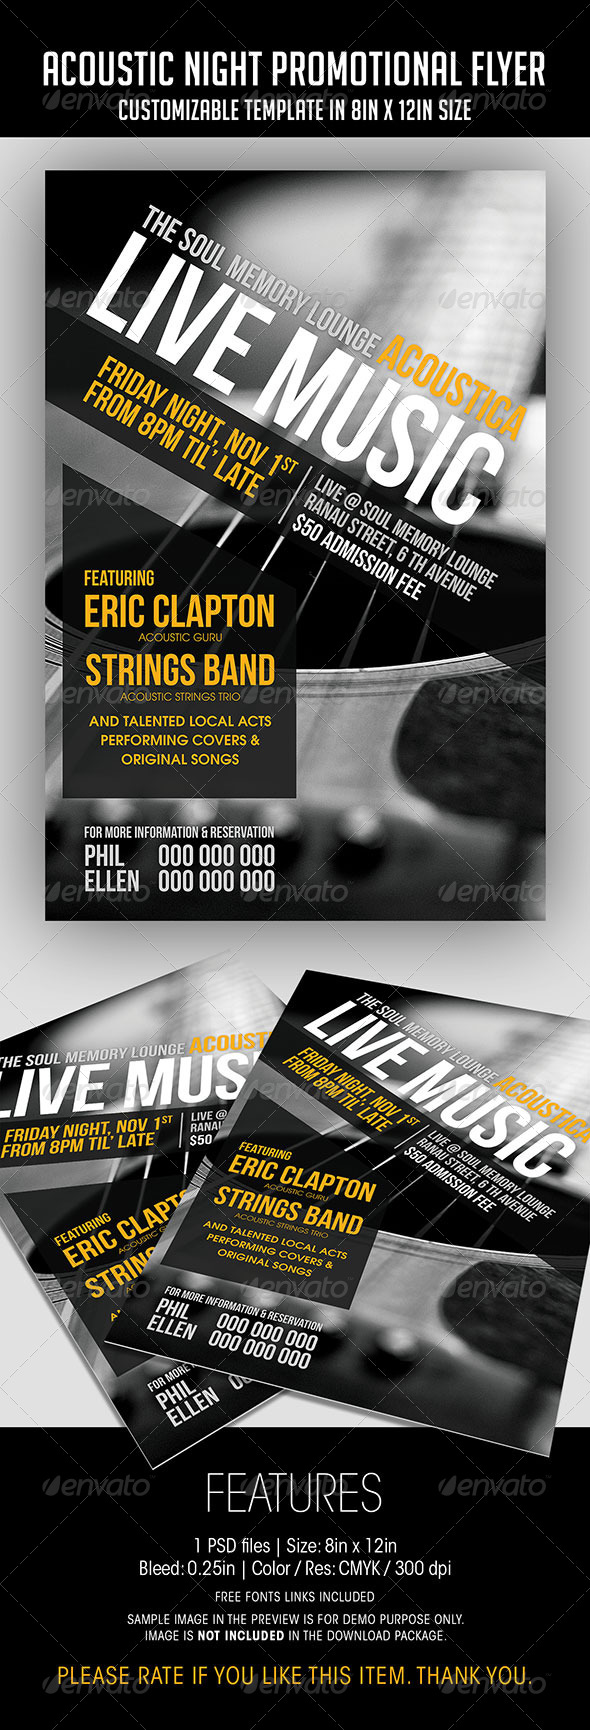 Acoustic Night Promotional Flyer - Concerts Events